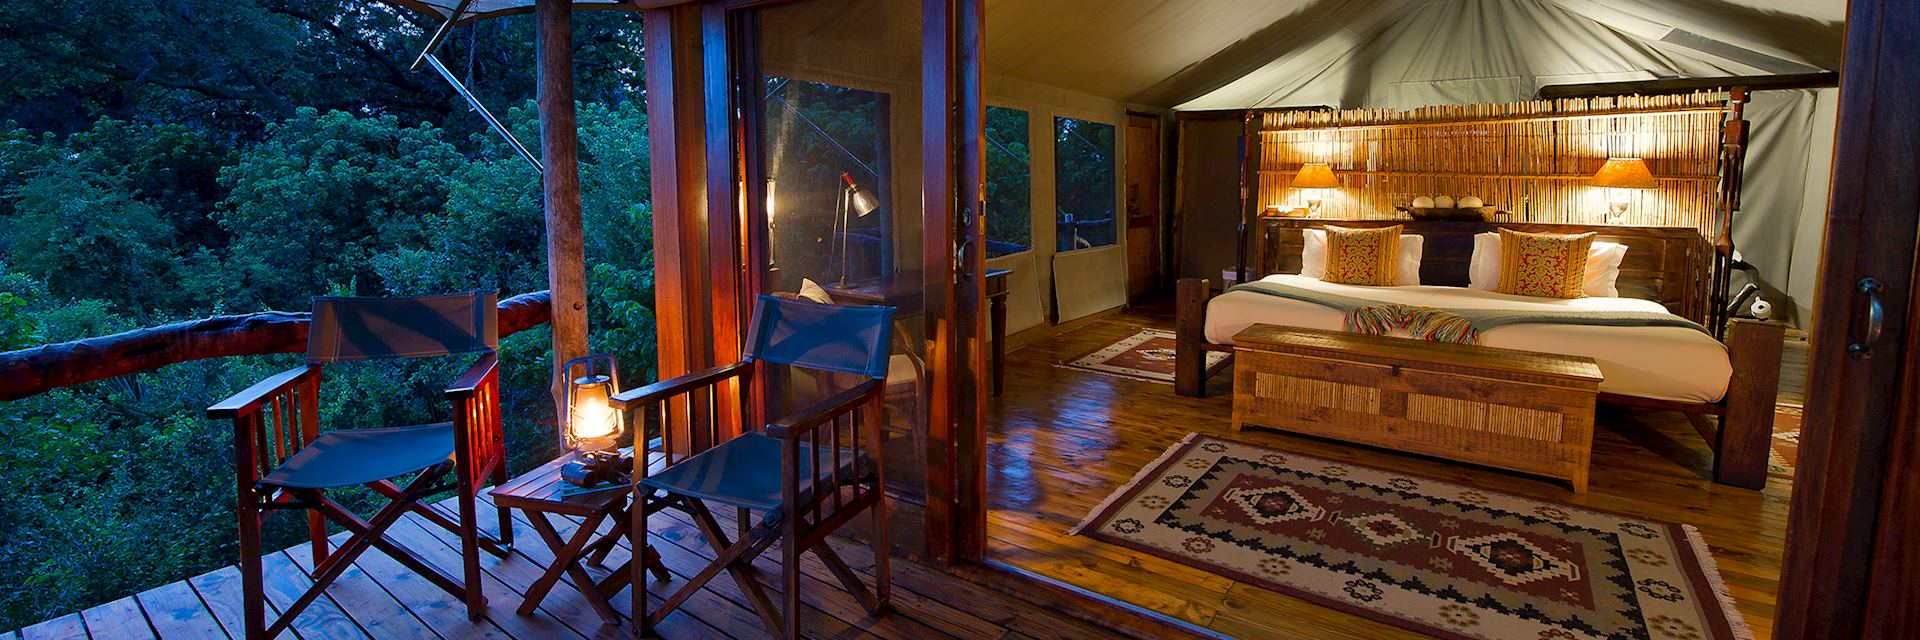 Tubu Tree Camp, Botswana